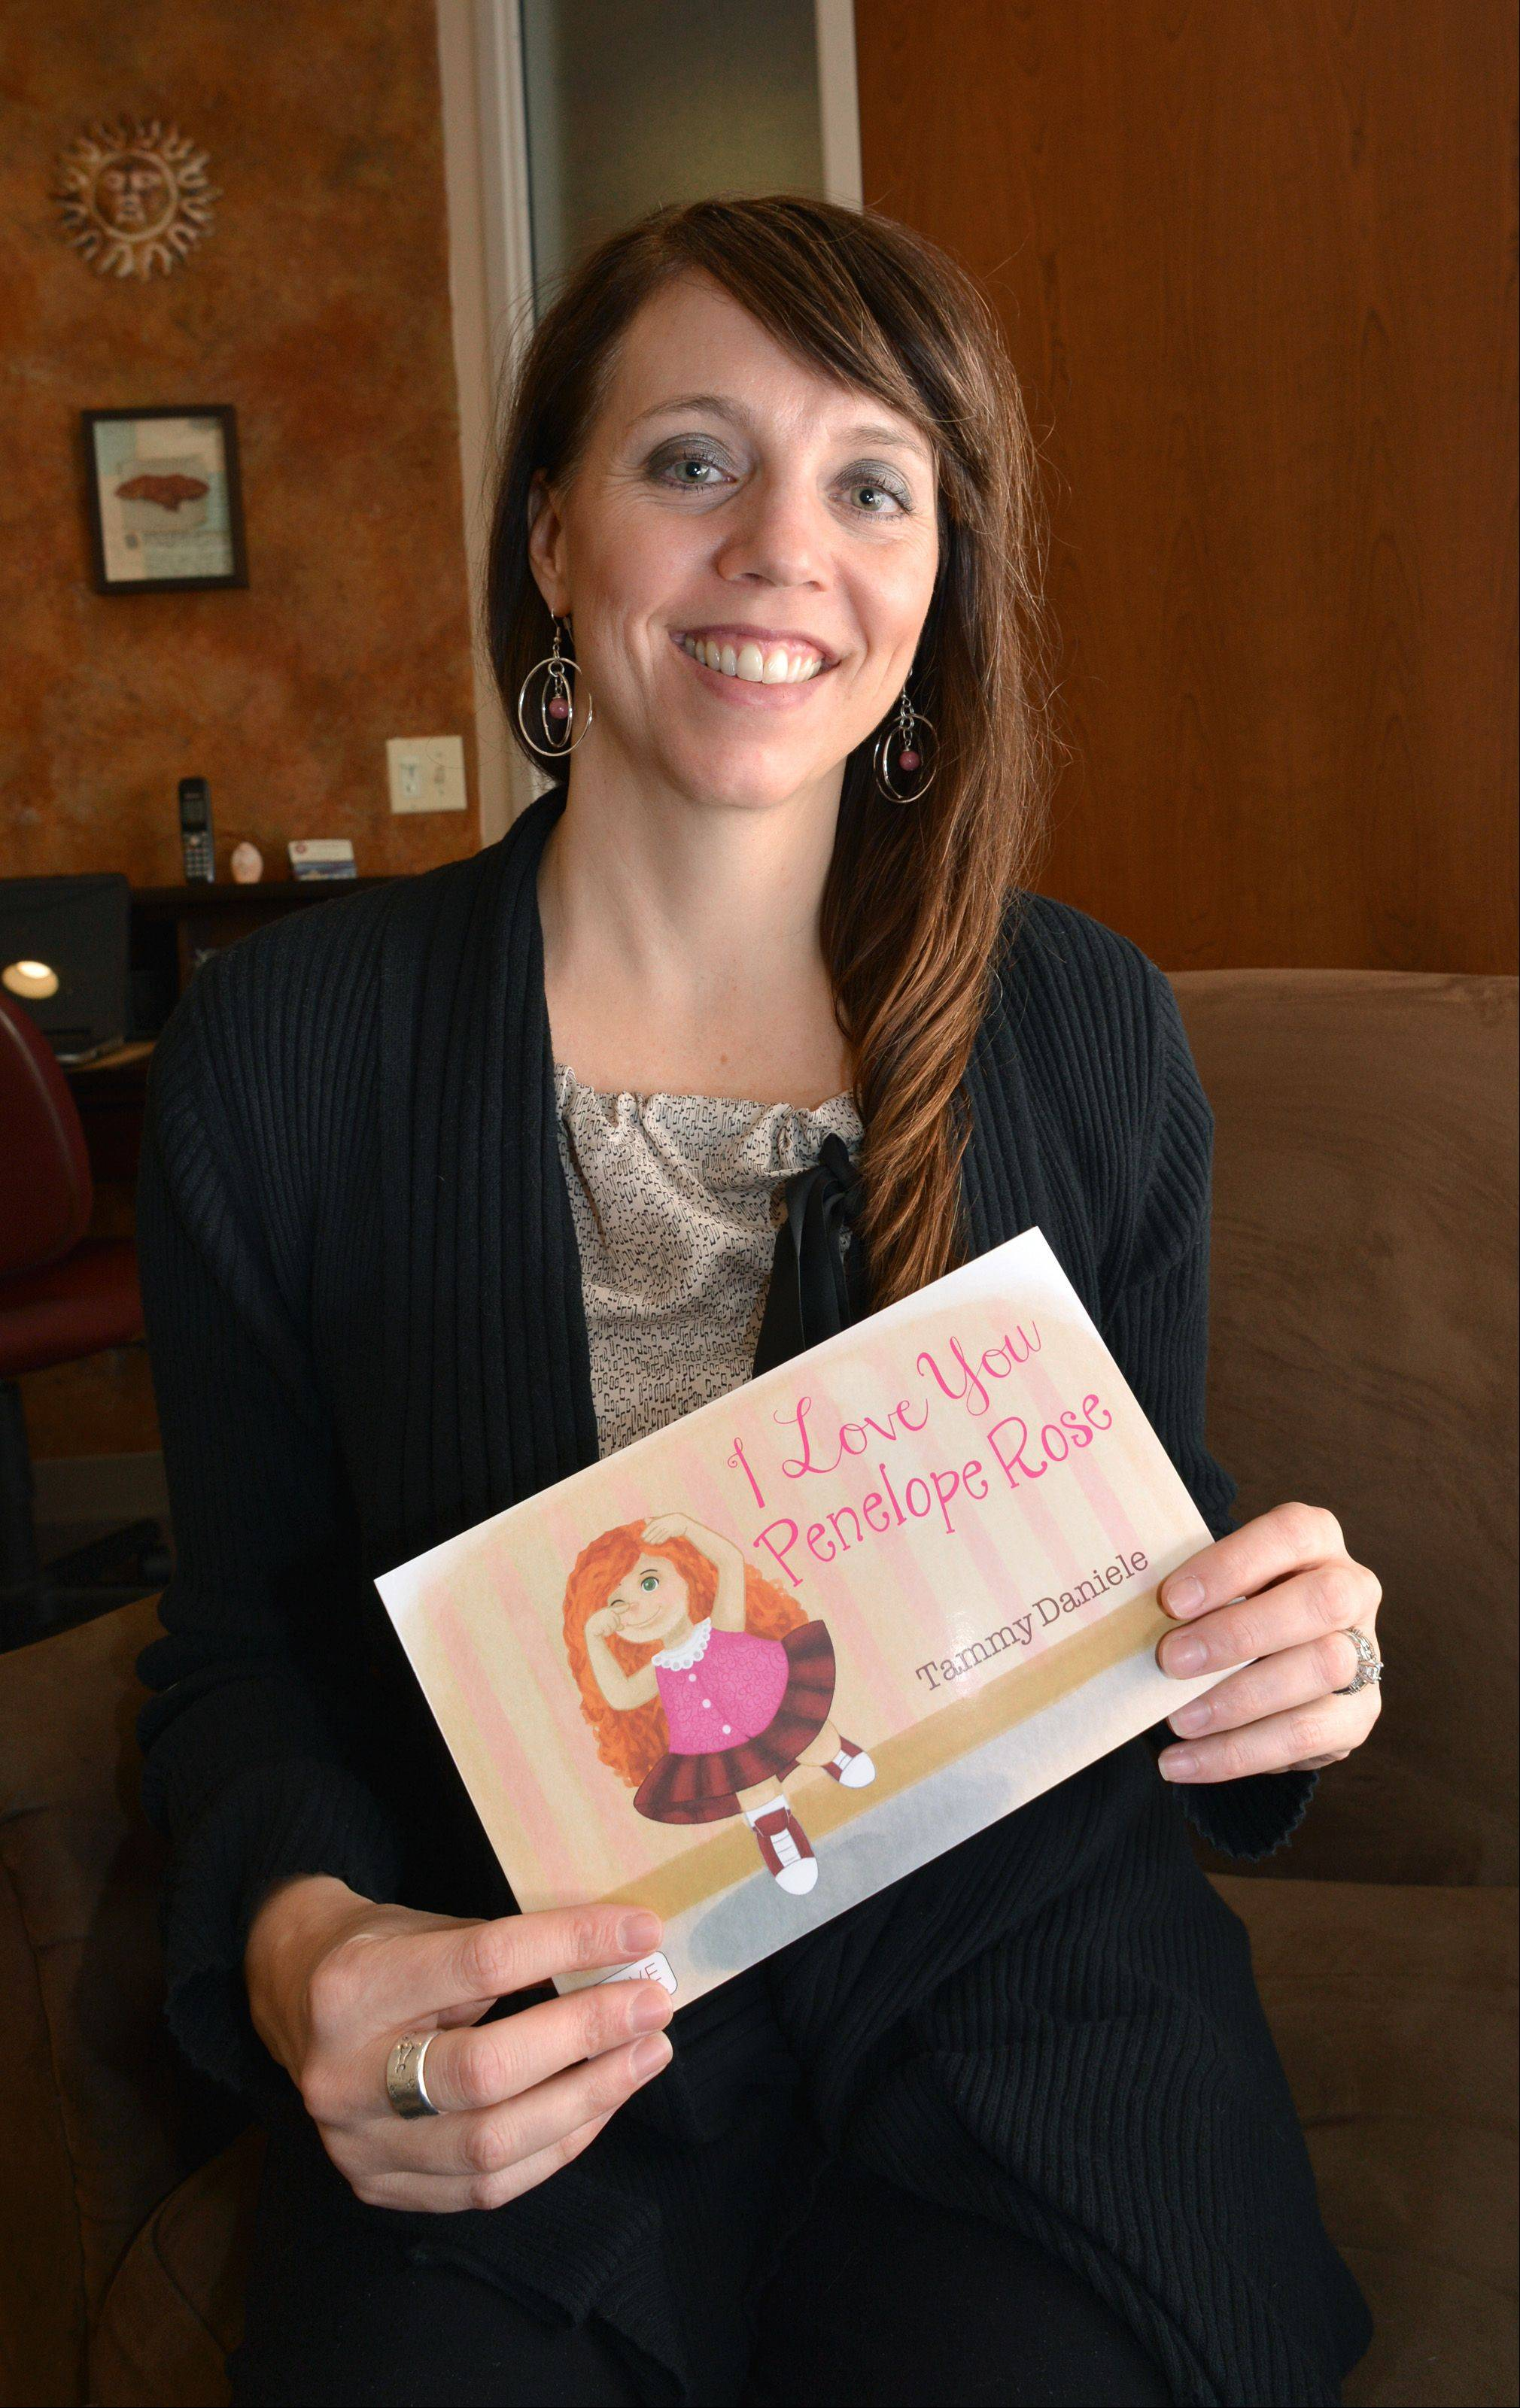 Naperville therapist Tammy Daniele wrote her children�s book, �I Love You Penelope Rose,� to help children whose parents are going through a divorce.